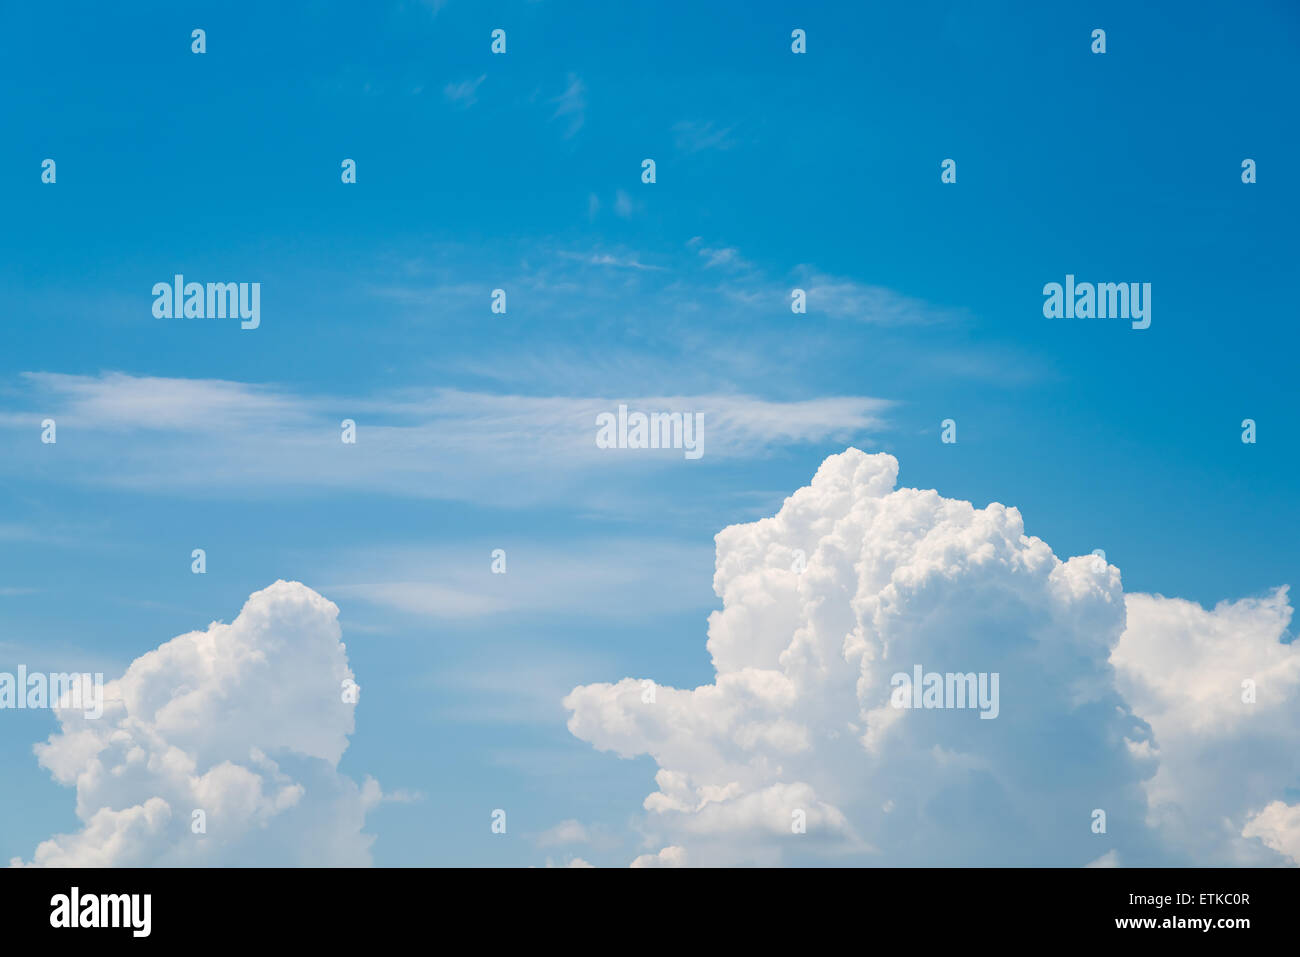 White Cumulonimbus Clouds On Summer Blue Sky - Stock Image